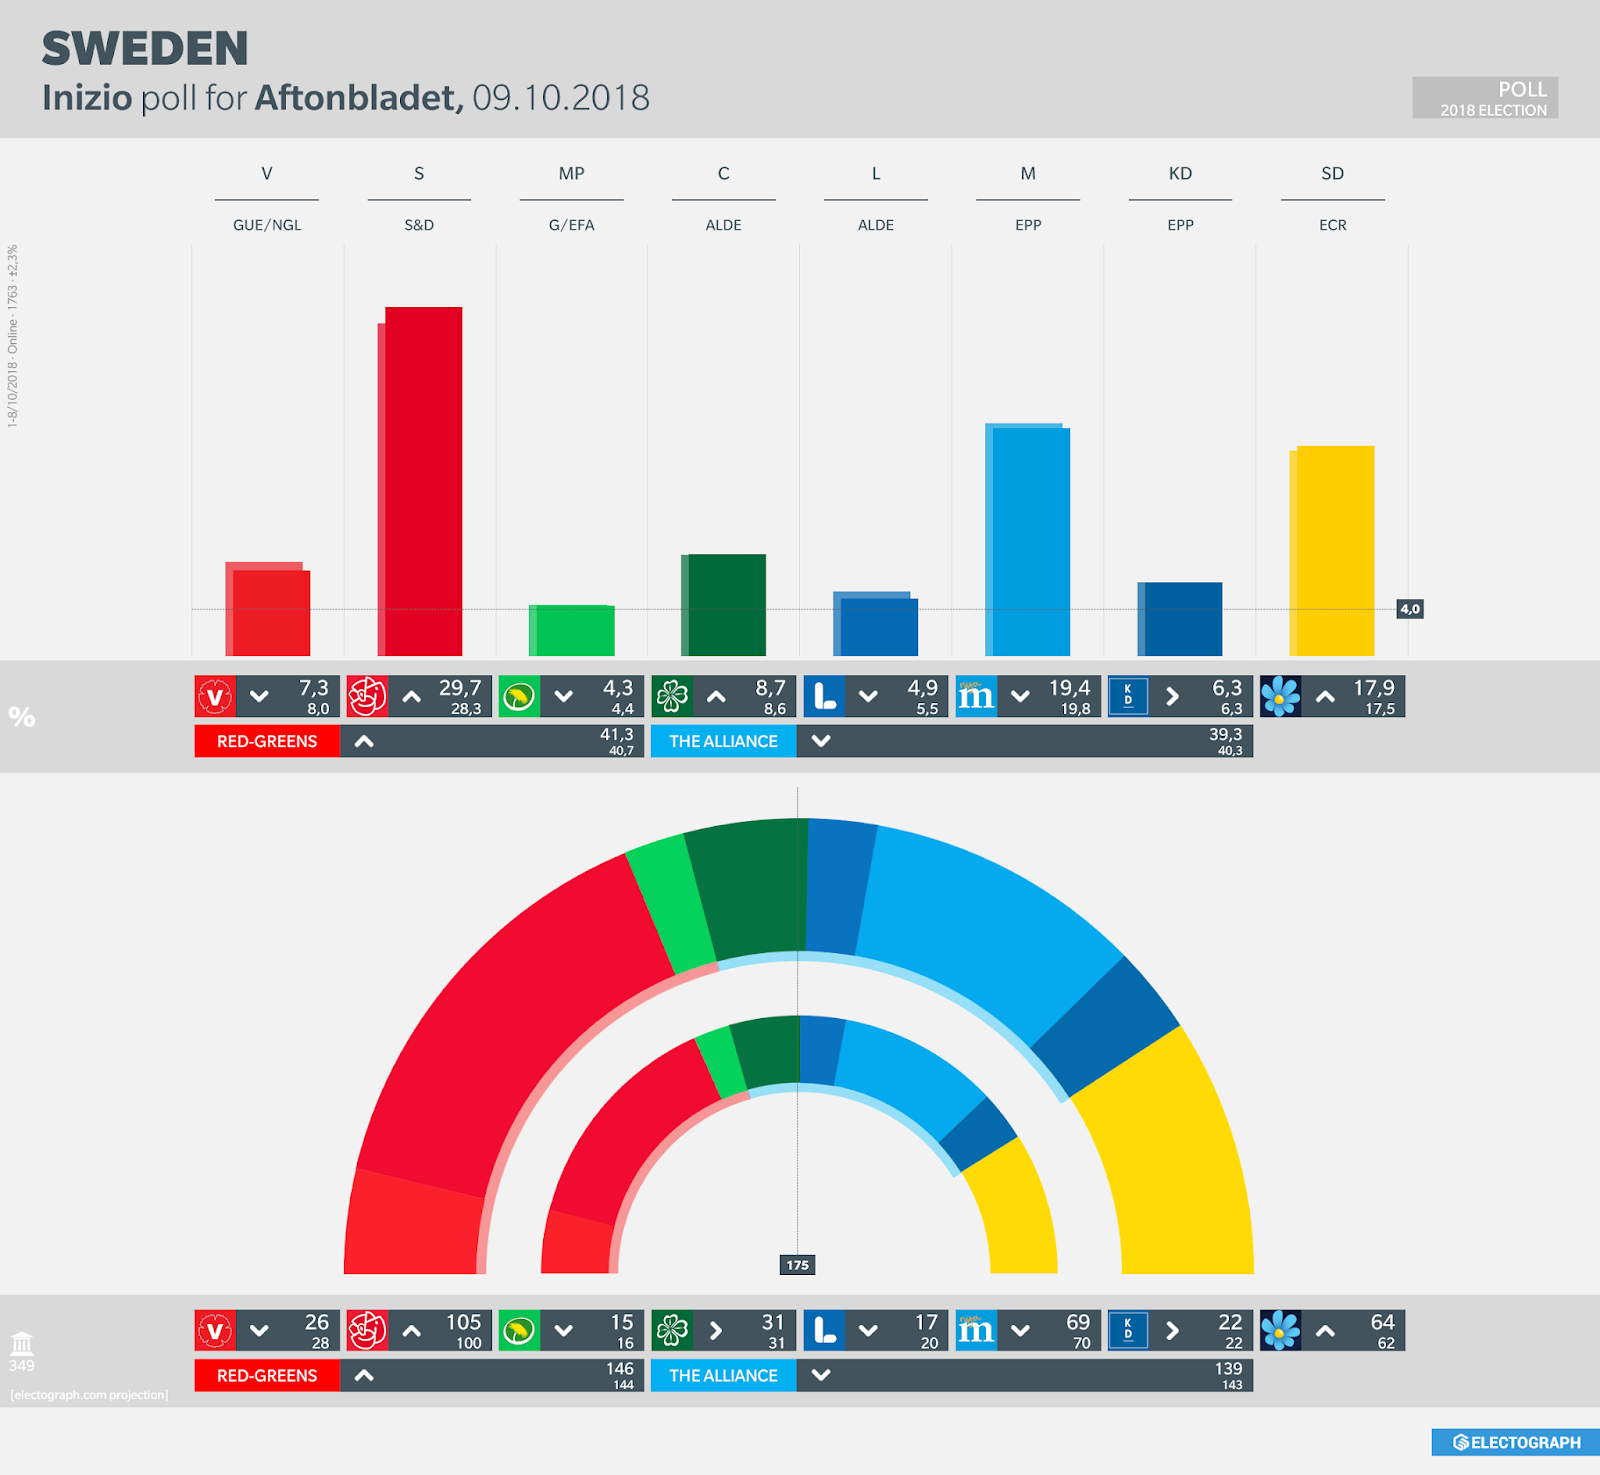 SWEDEN: Inizio poll chart for Aftonbladet, October 2018